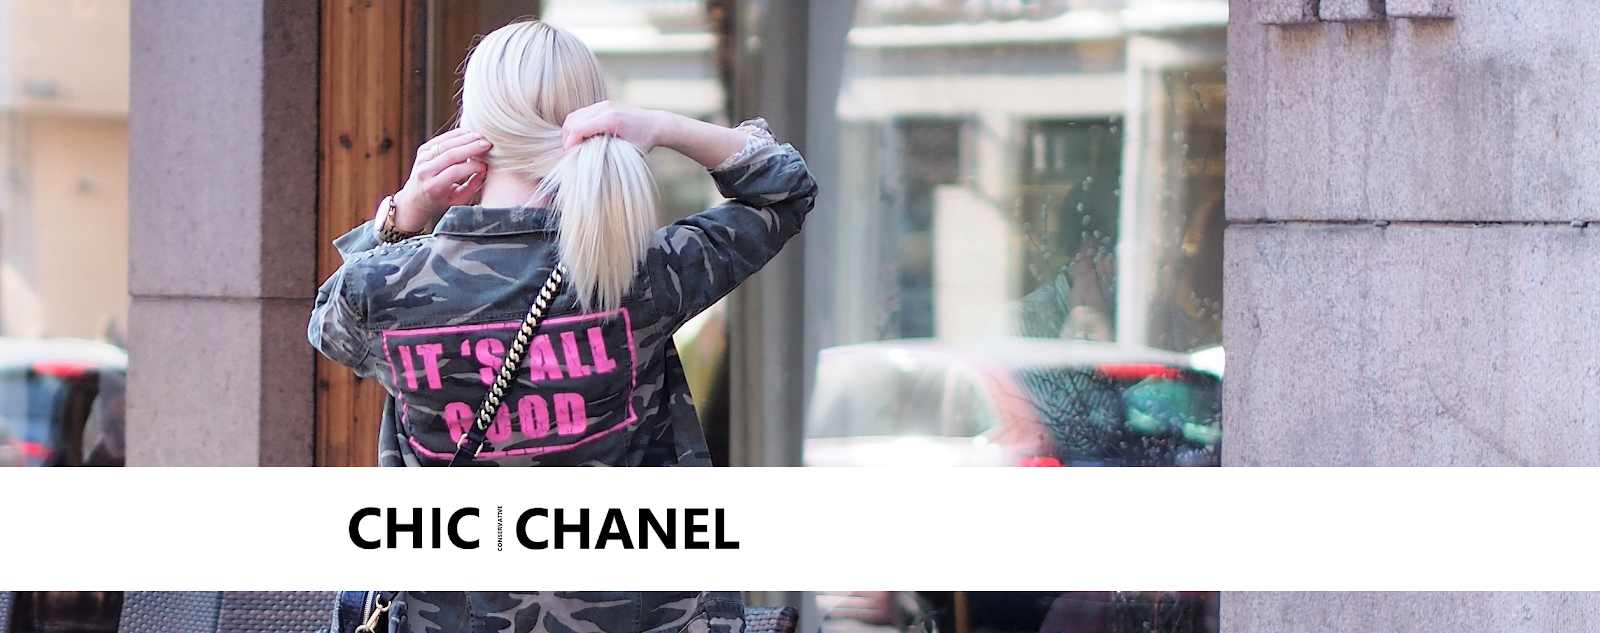 Chic Conservative Chanel